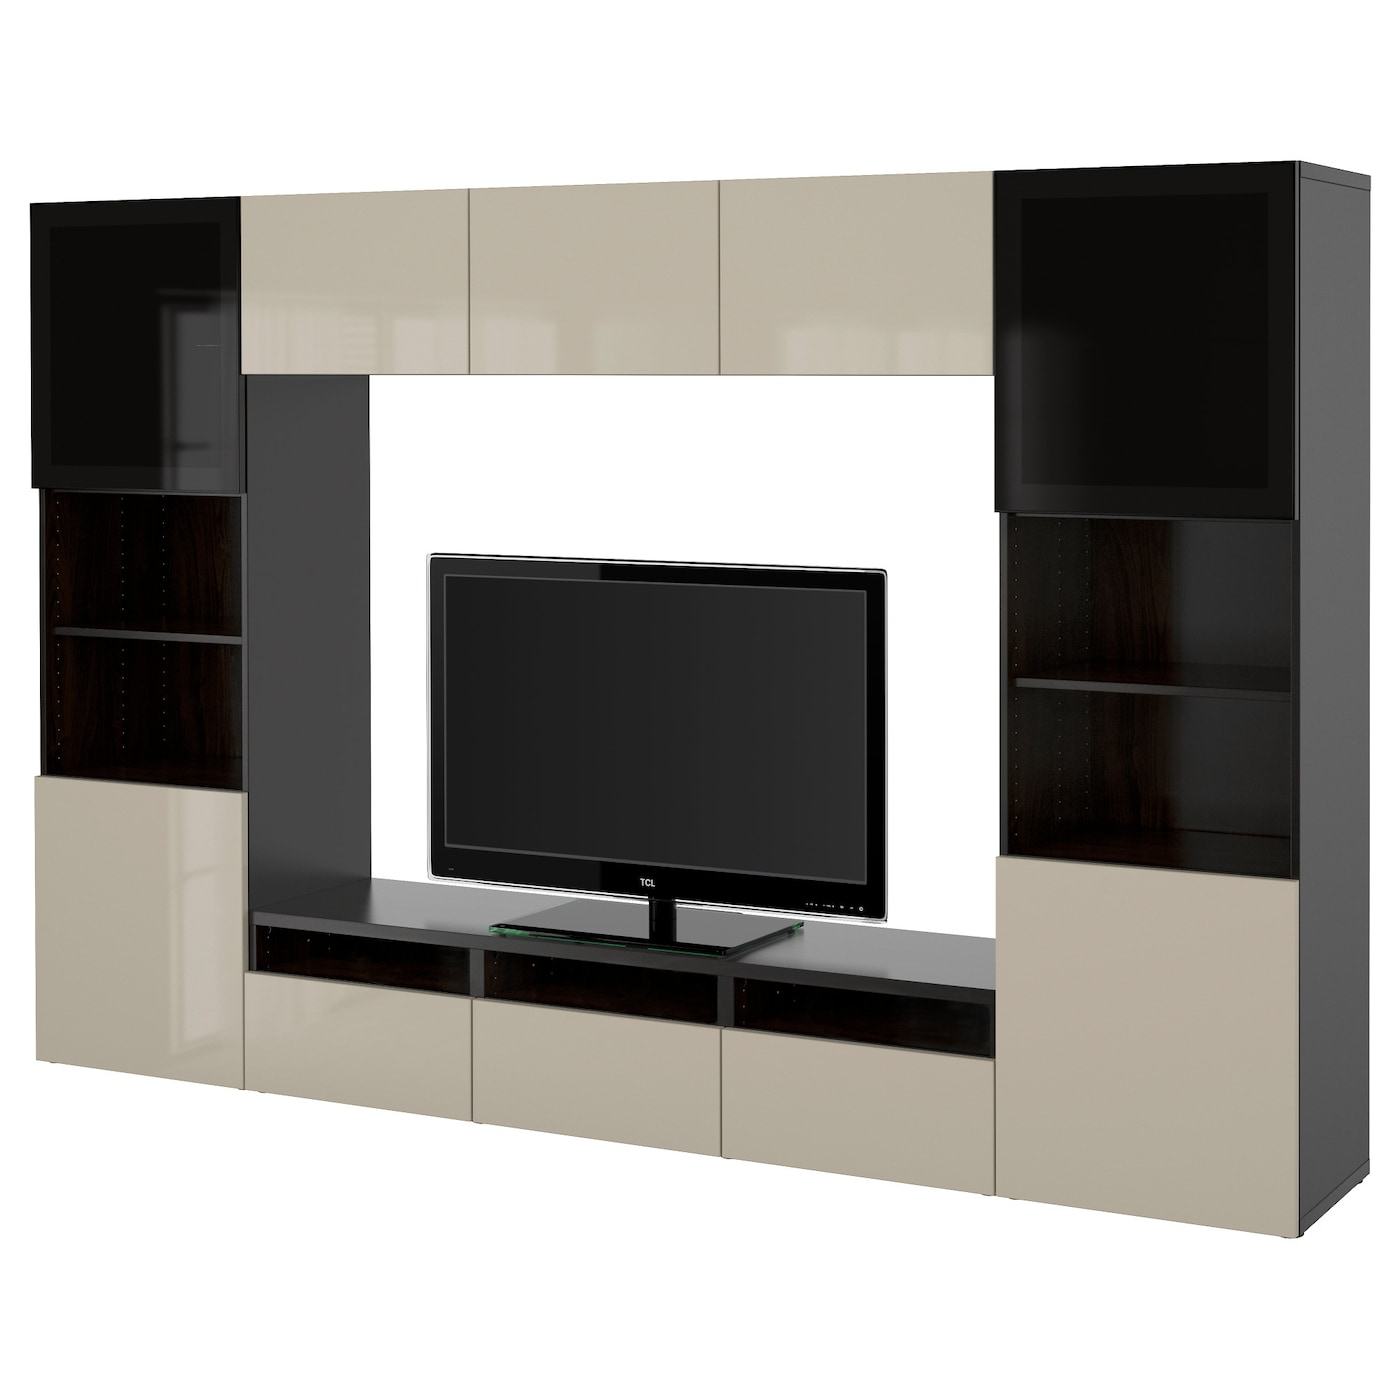 best tv storage combination glass doors black brown selsviken high gloss beige smoked glass. Black Bedroom Furniture Sets. Home Design Ideas